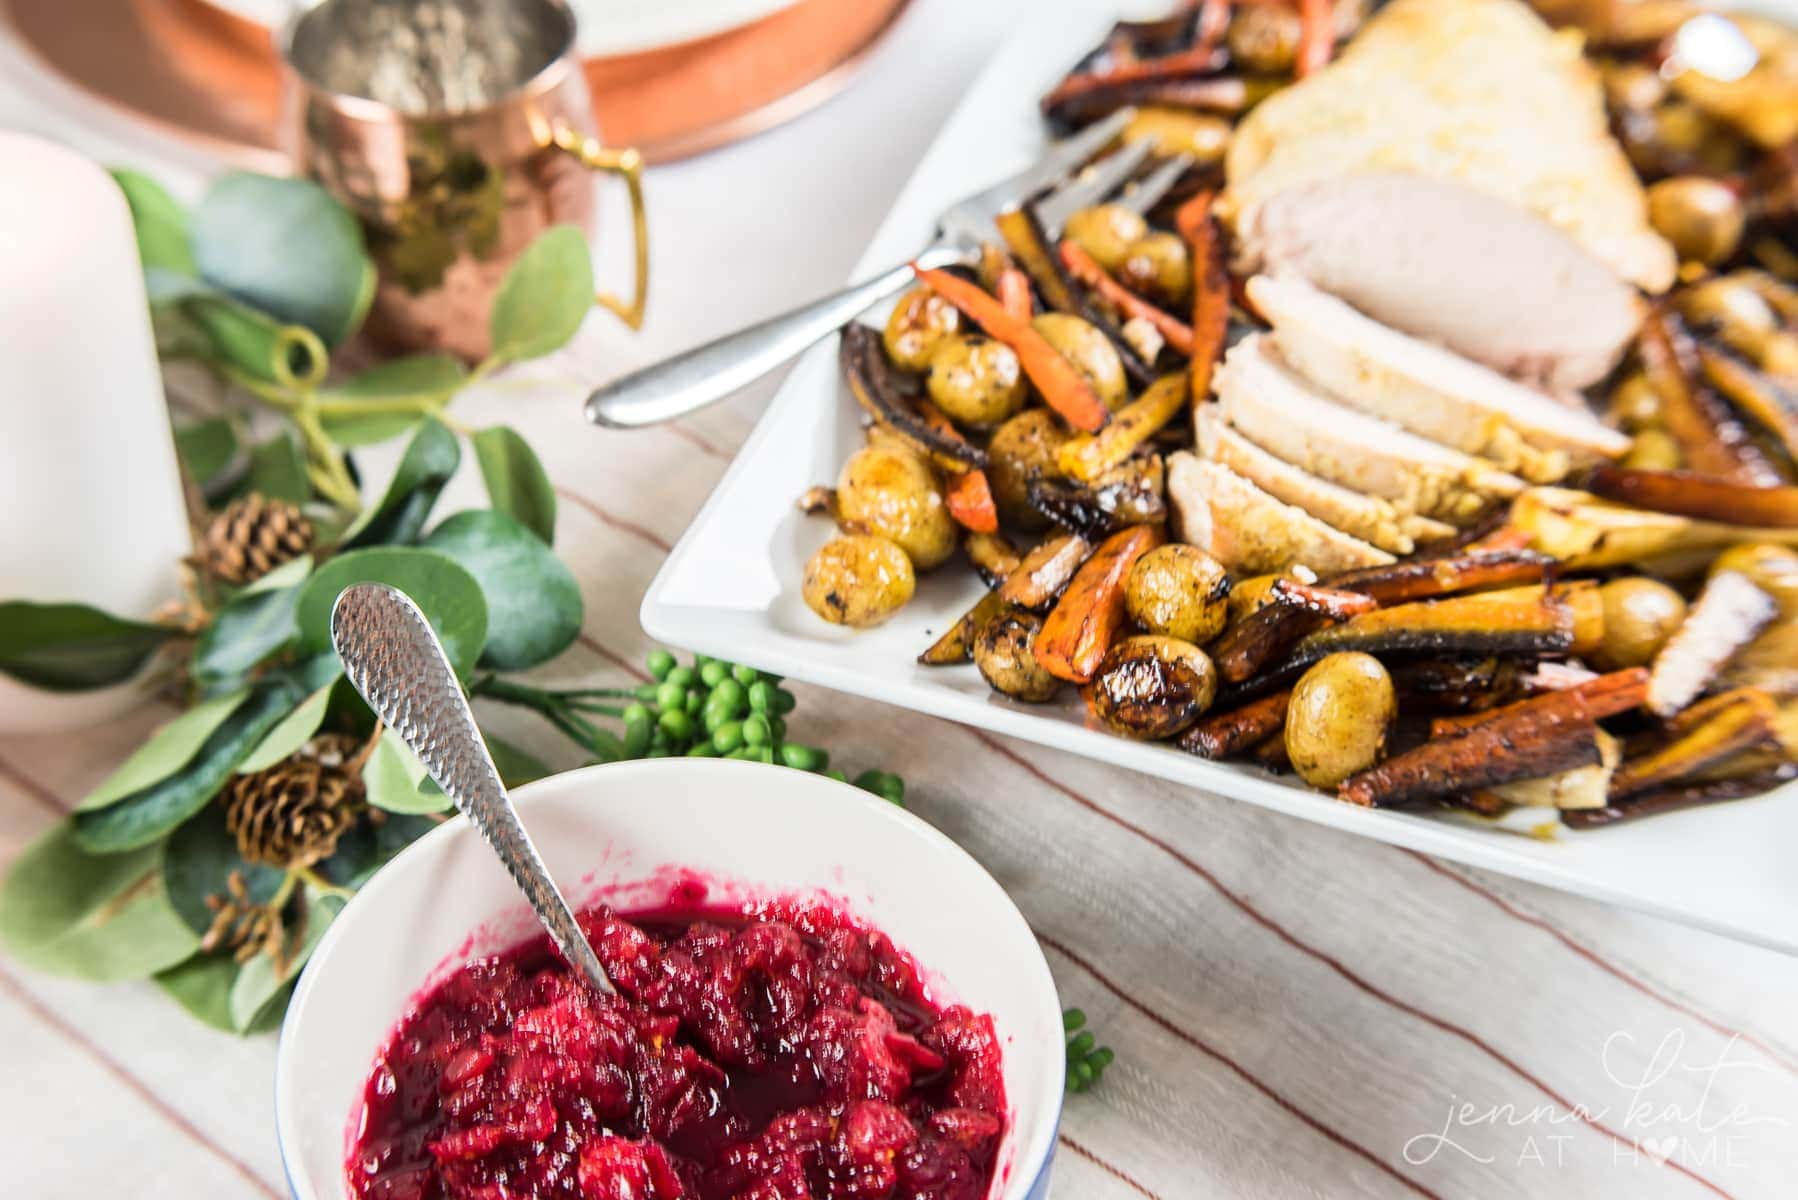 A tender, juicy roasted turkey breast served over tender roasted carrots and potatoes and homemade cranberry sauce